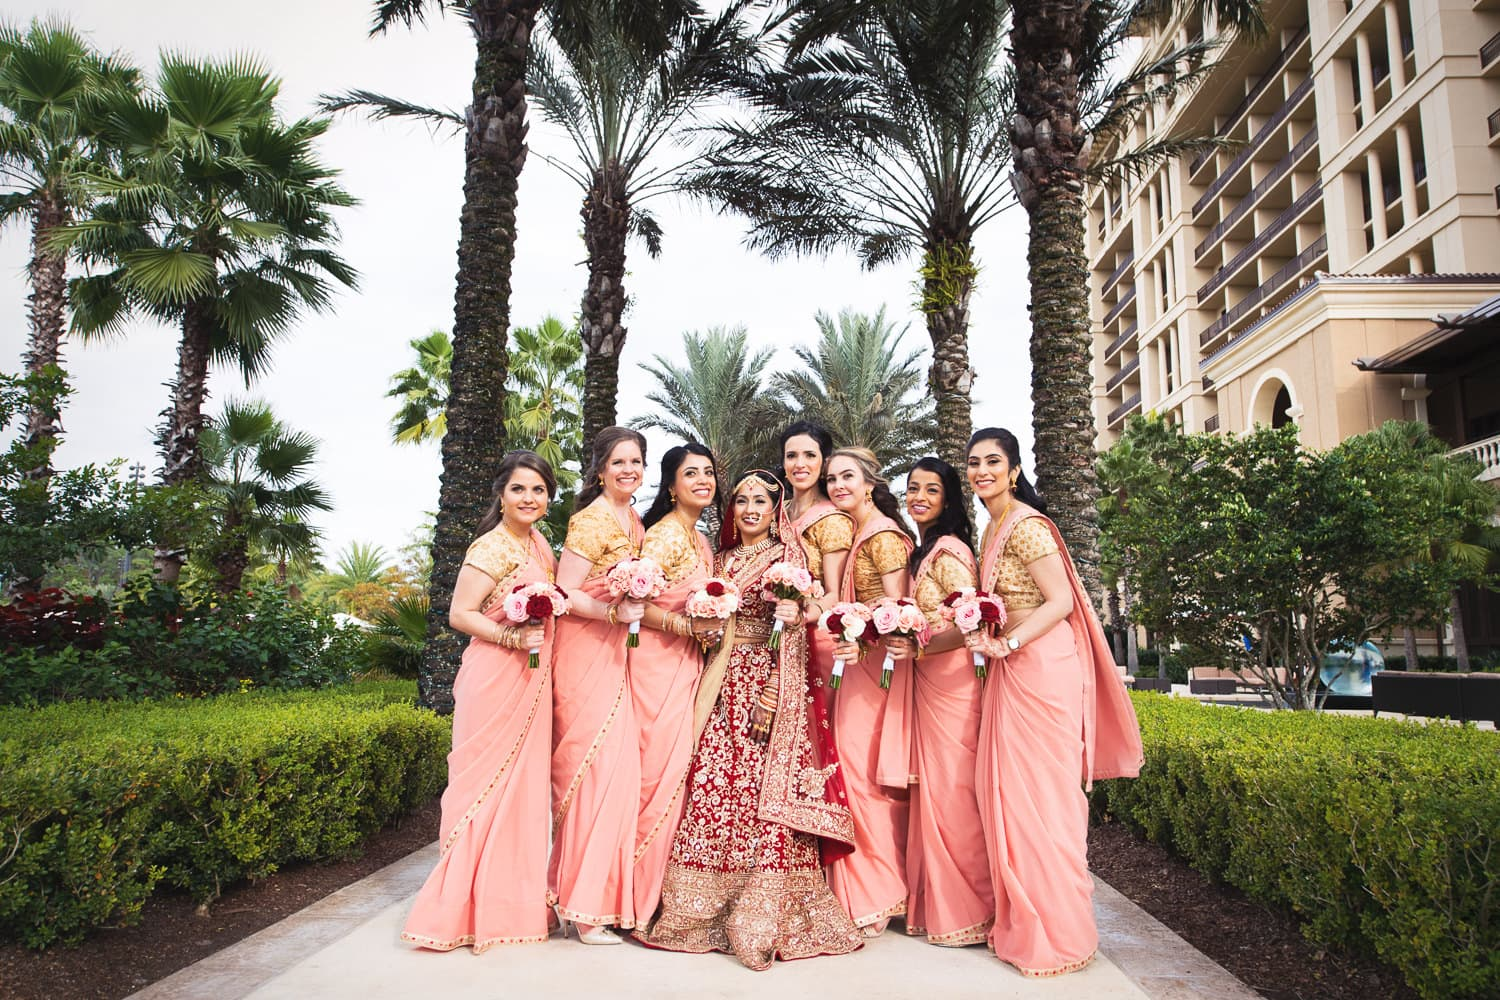 four-seasons-orlando-wedding-22.jpg